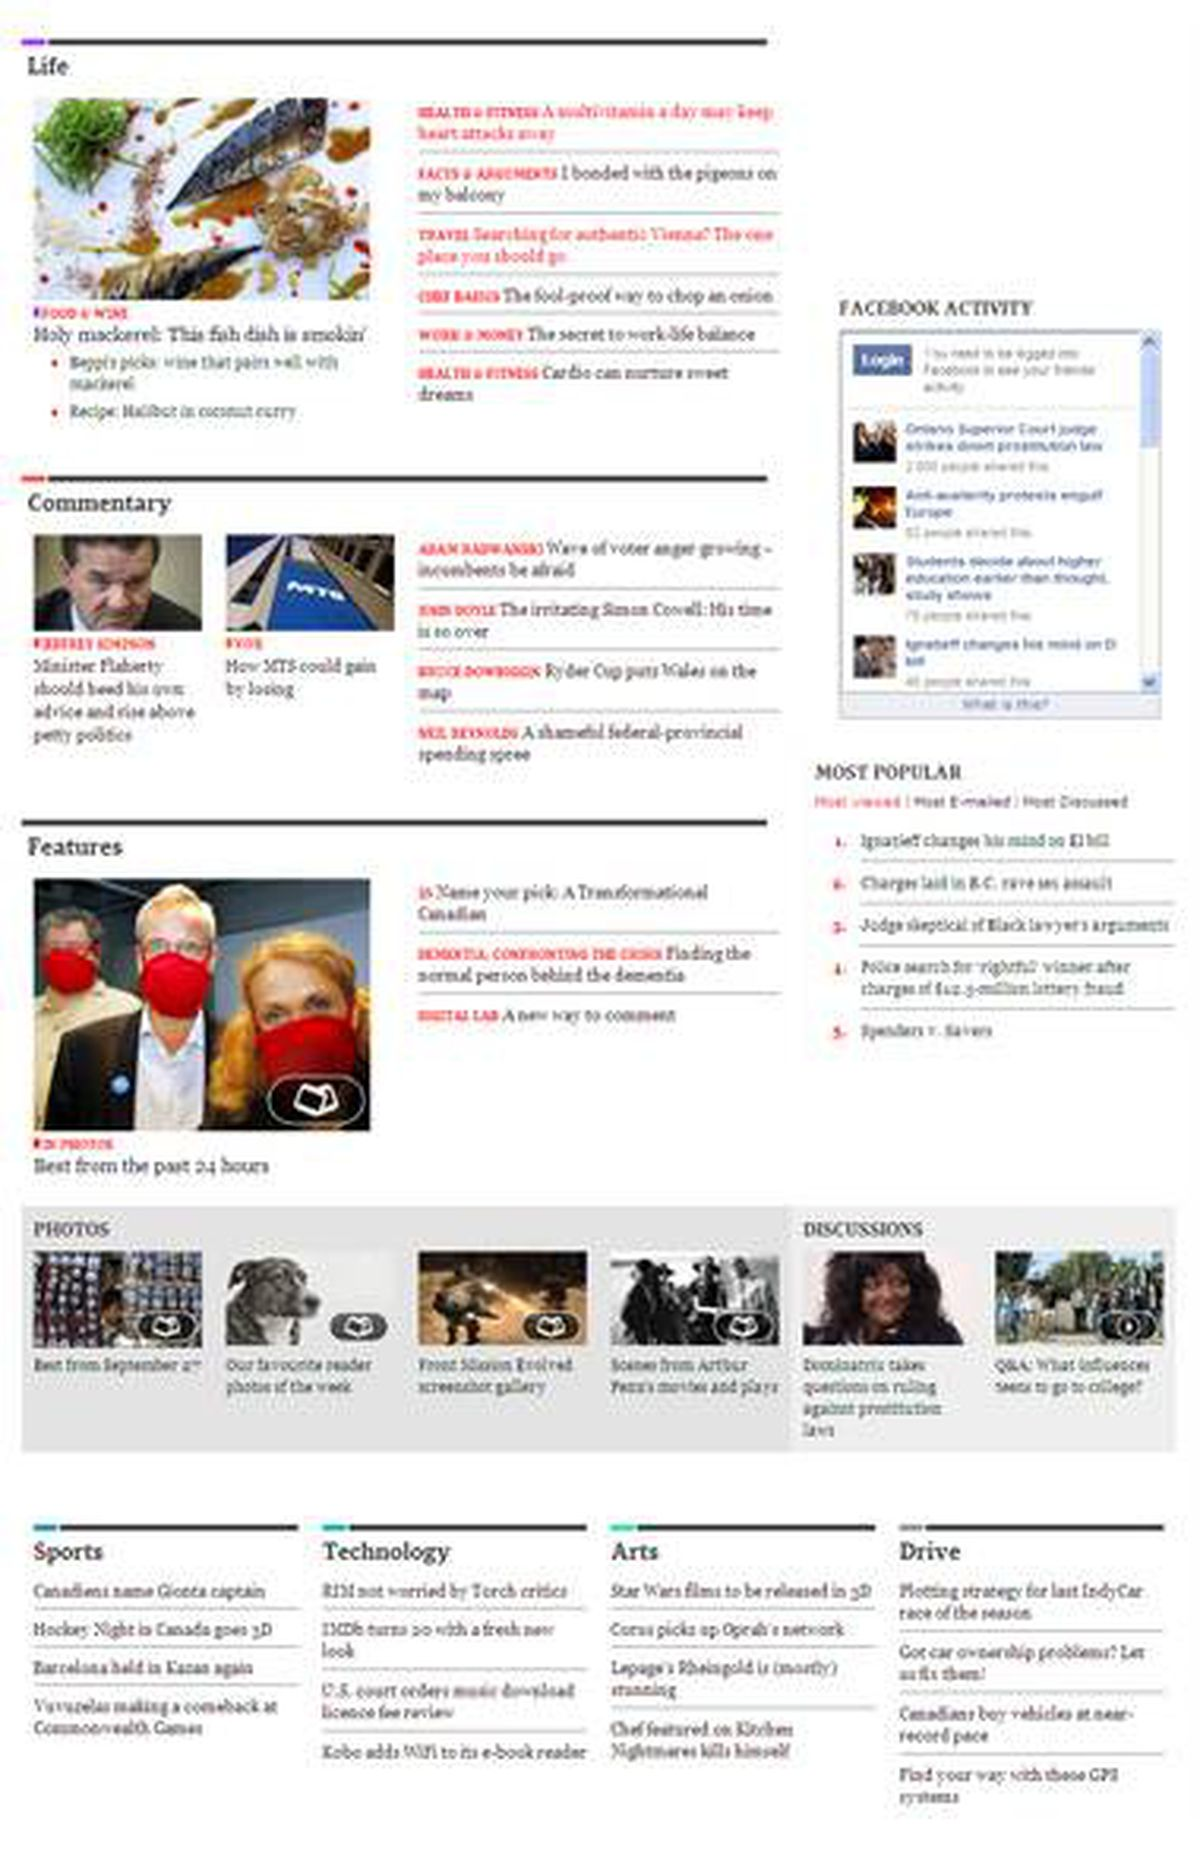 At the bottom of the page, you'll find commentary, features, photos and discussions.